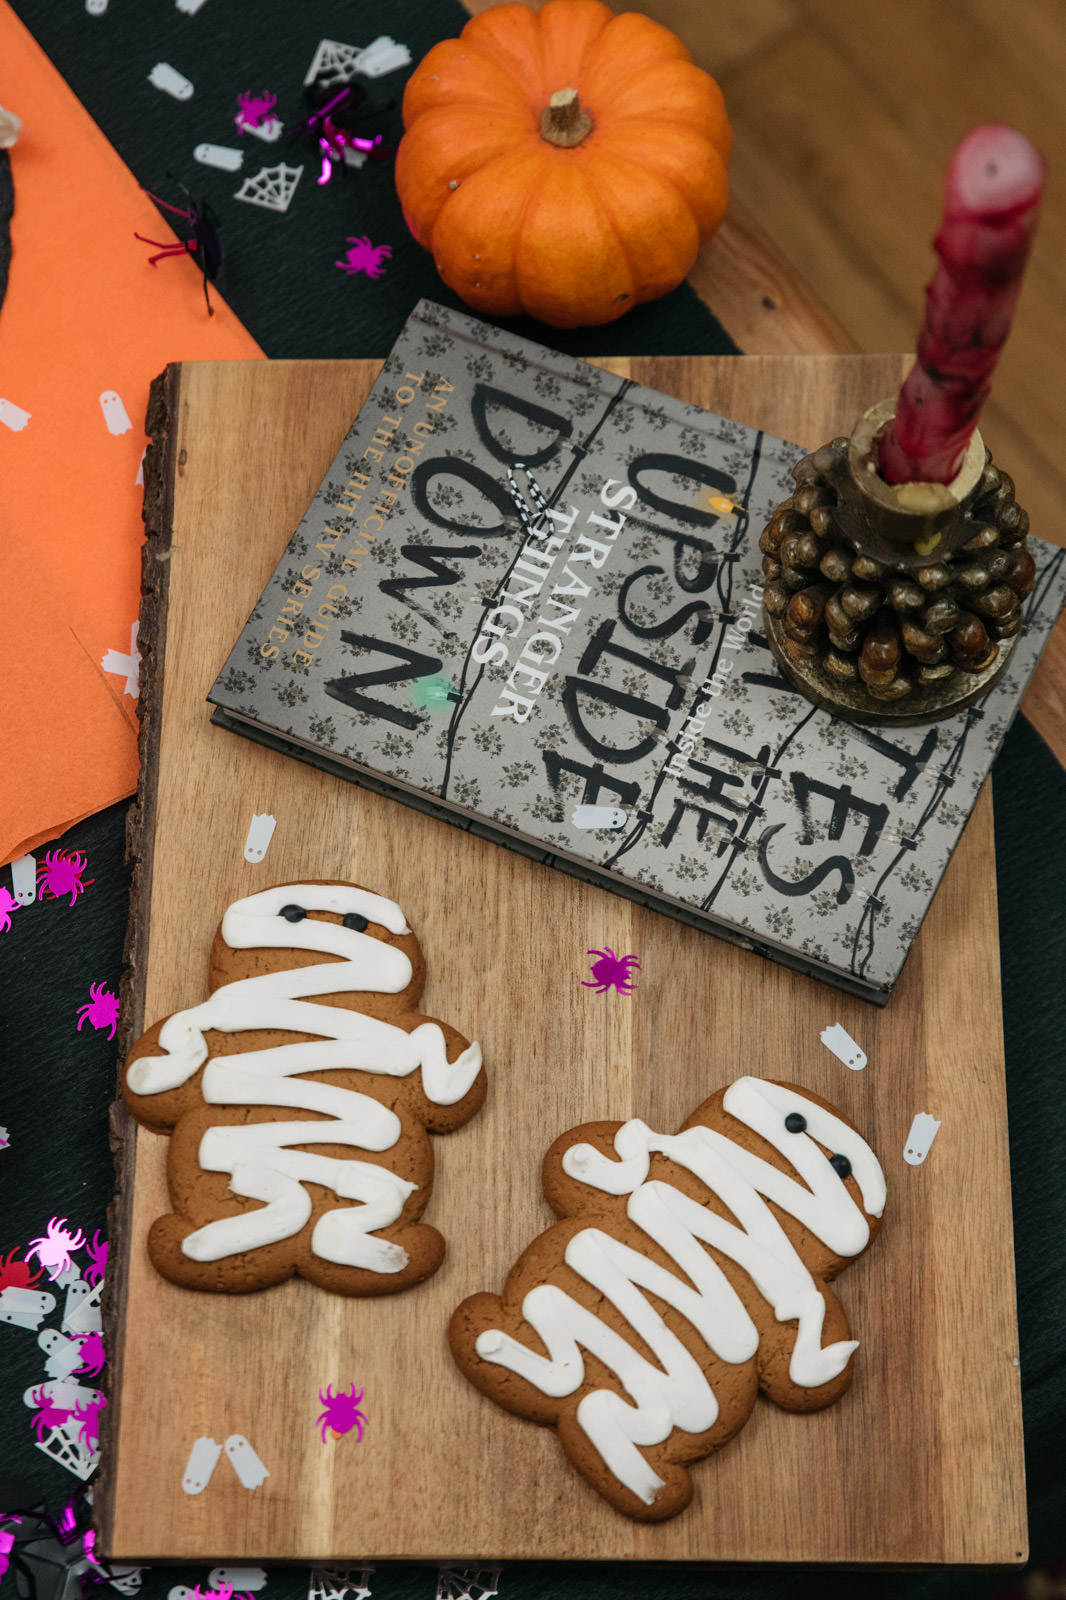 Blog-Mode-And-The-City-Lifestyle-Halloween-2017-4